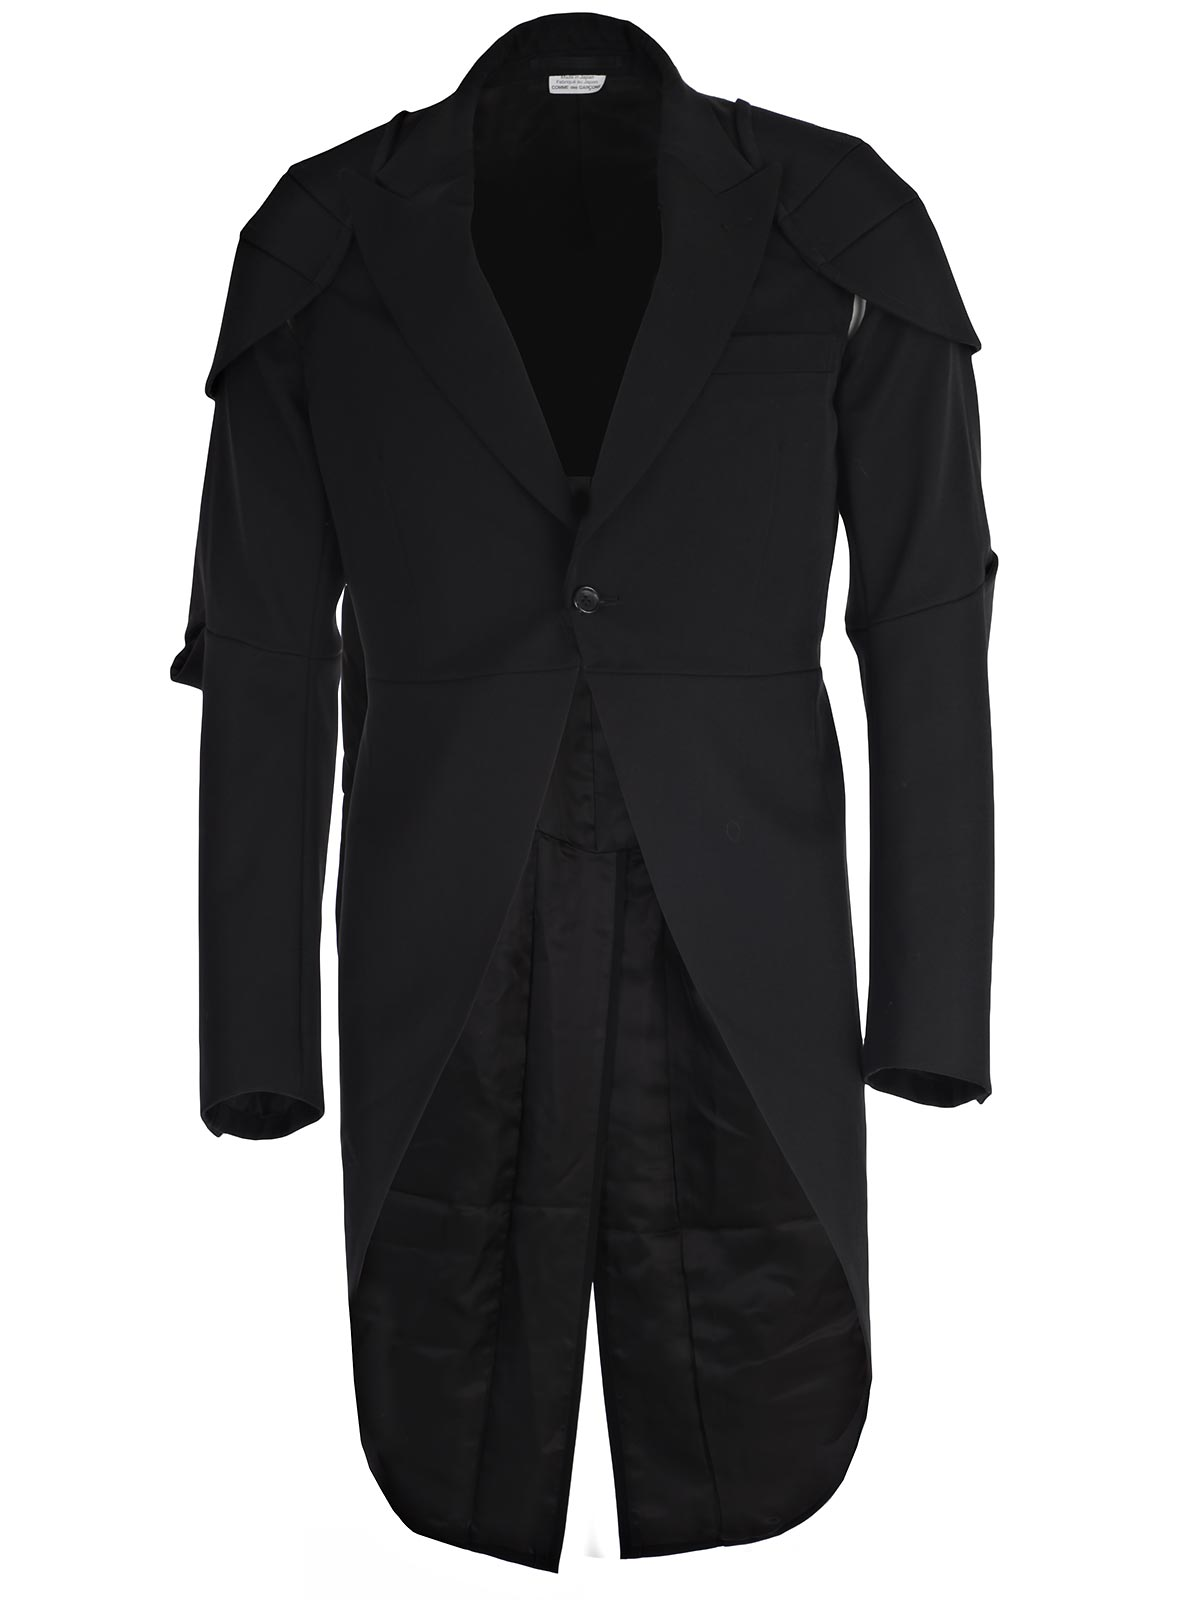 Picture of COMME DES GARCONS HOMME PLUS JACKET GIACCA SMOKING TAGLIO NEL GOMITO + SPALLINE